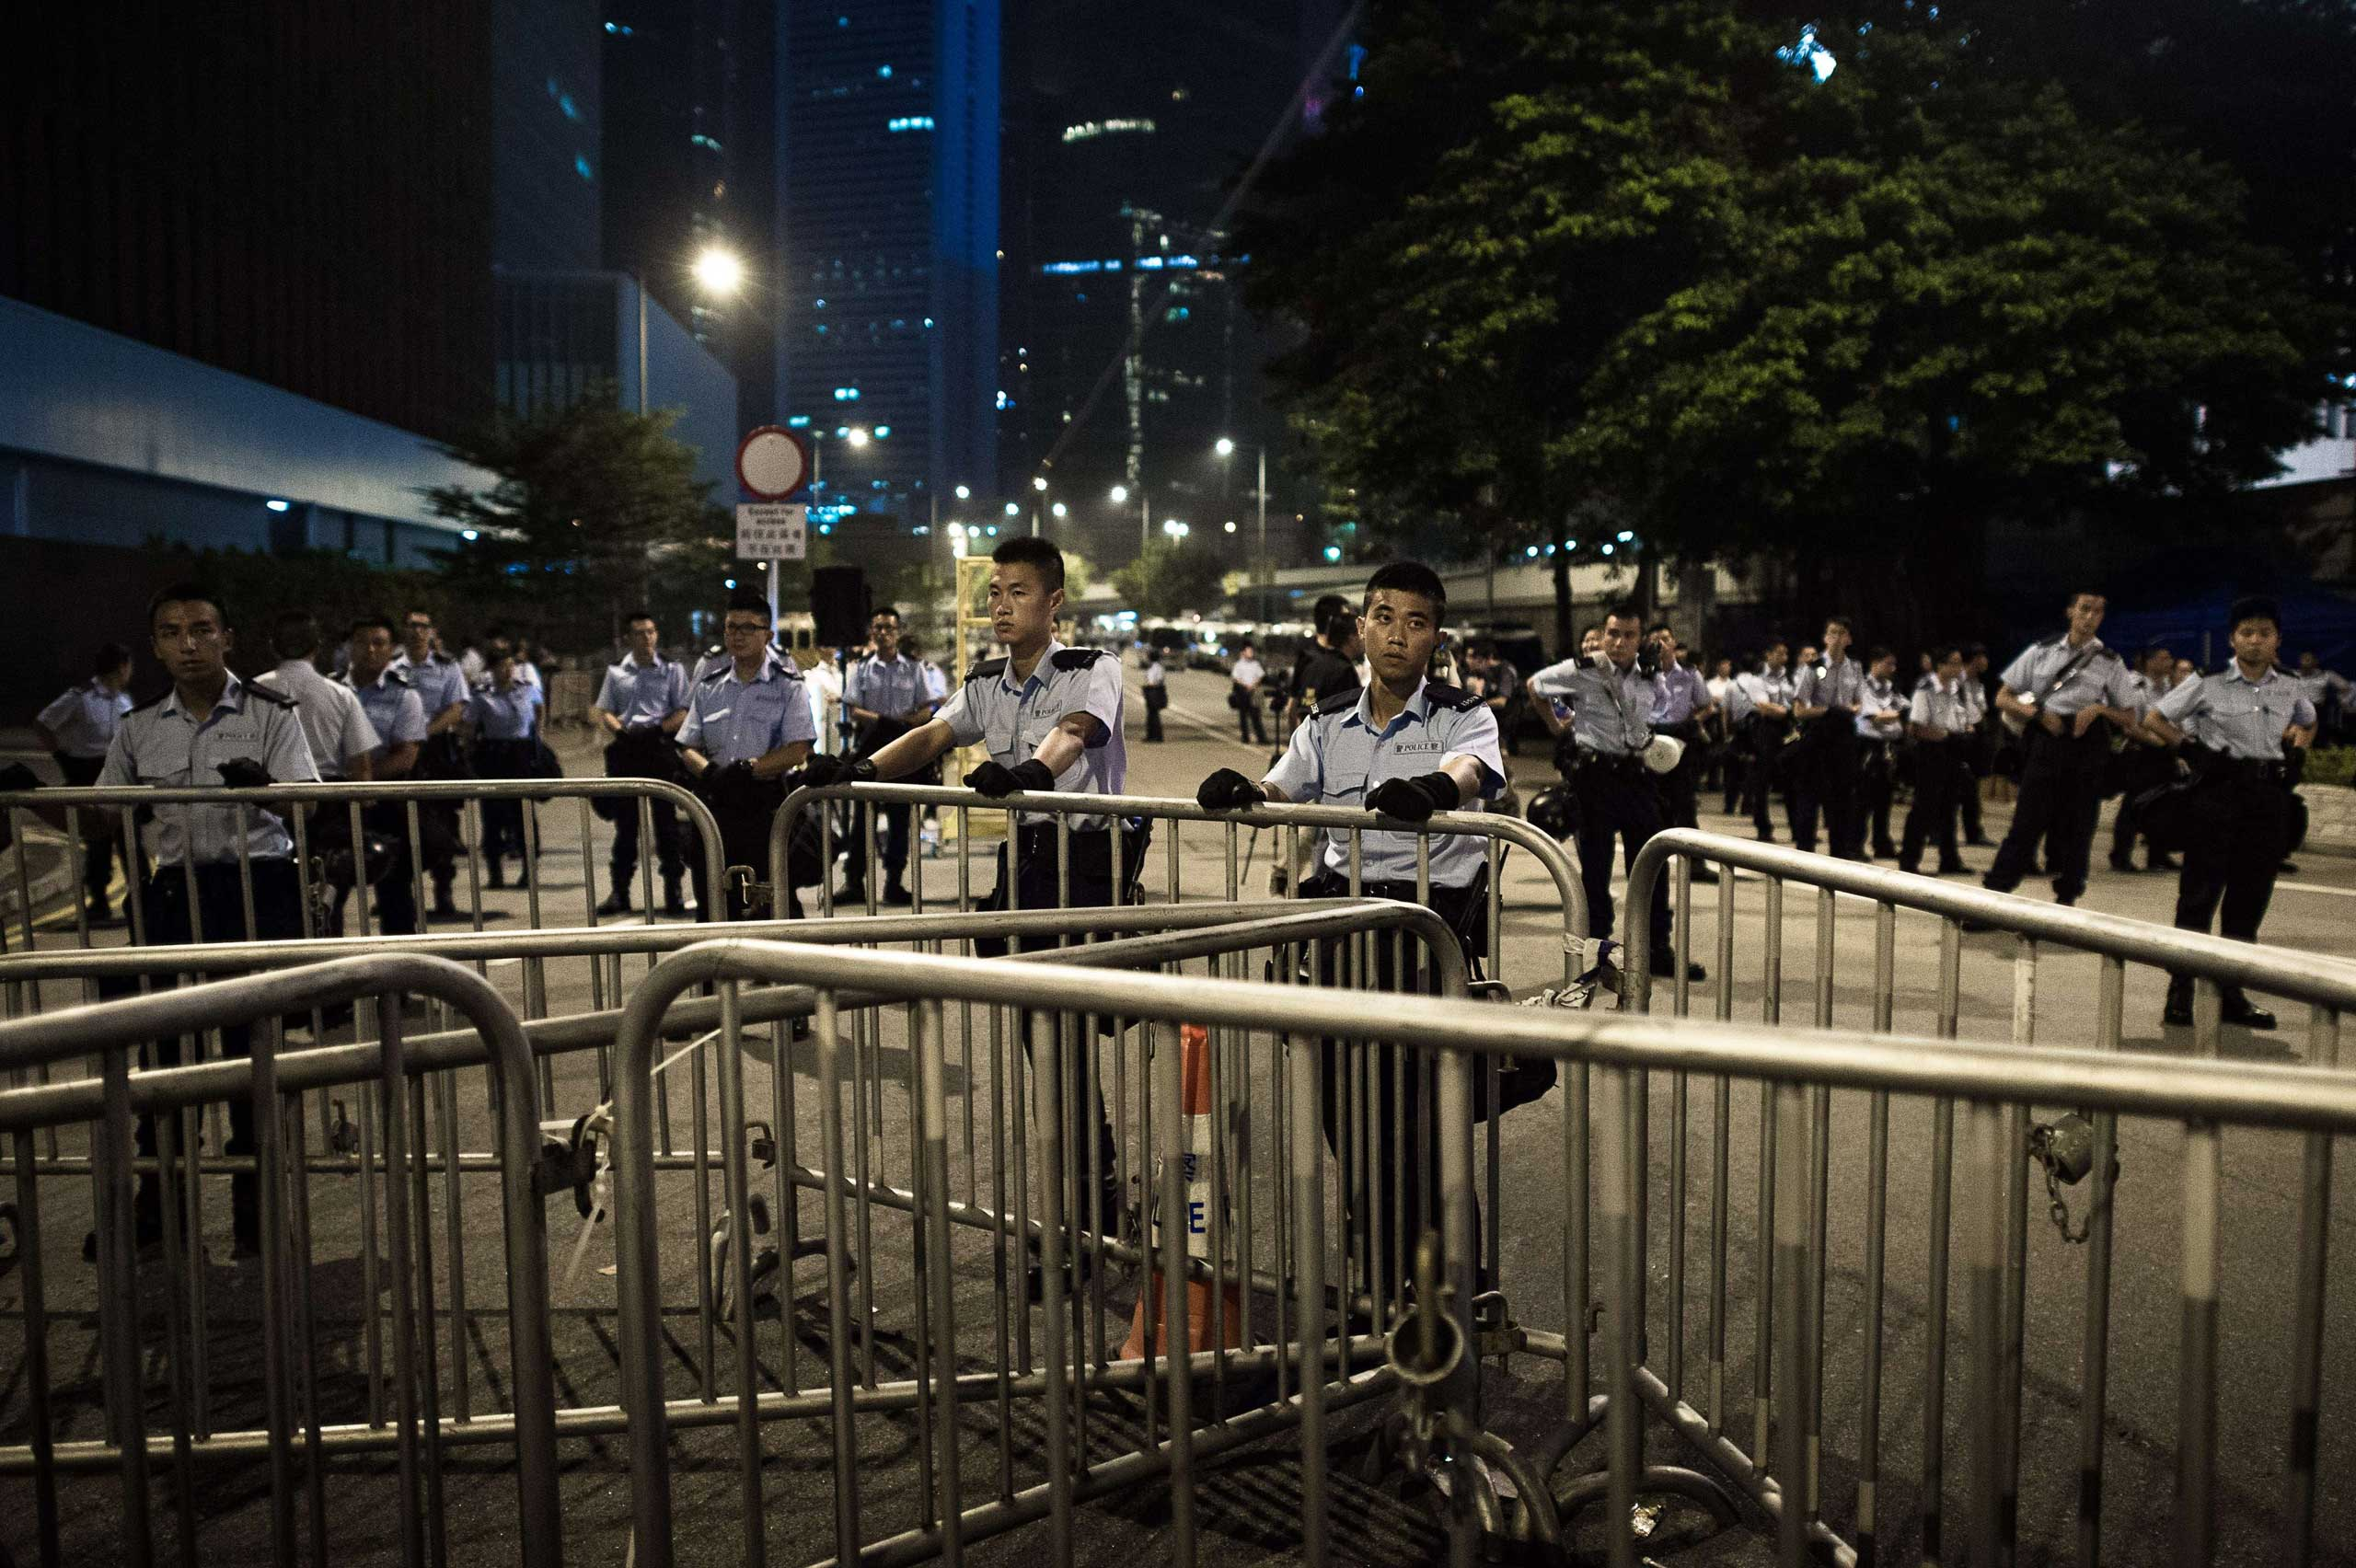 Police stand guard outside the government headquarters in Hong Kong on Oct. 2, 2014, as pro-democracy protesters remain gathered for the fifth day in a push for free elections of the city's leader.